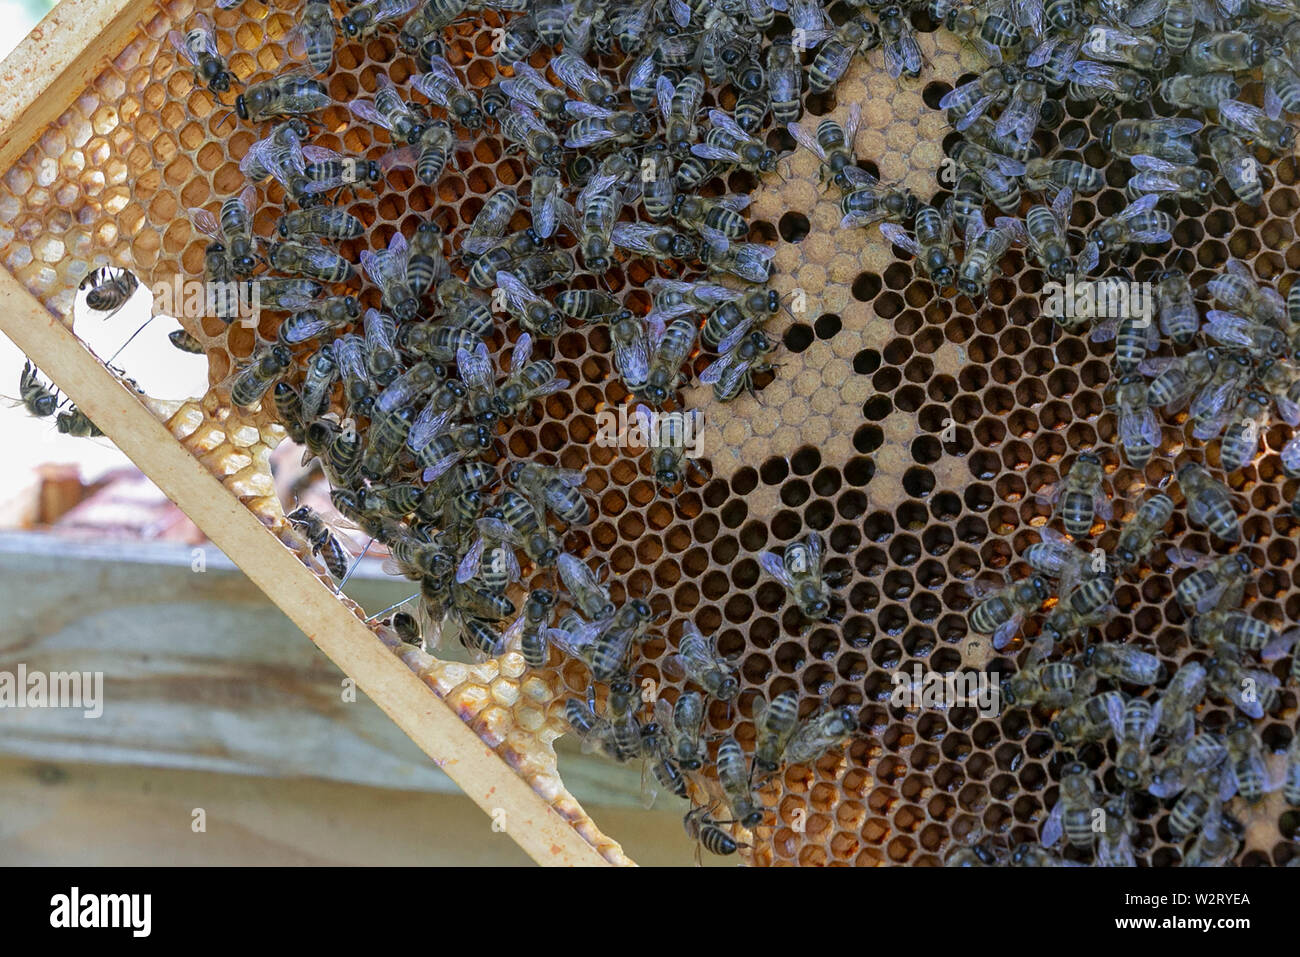 Beekeeping Stock Photo